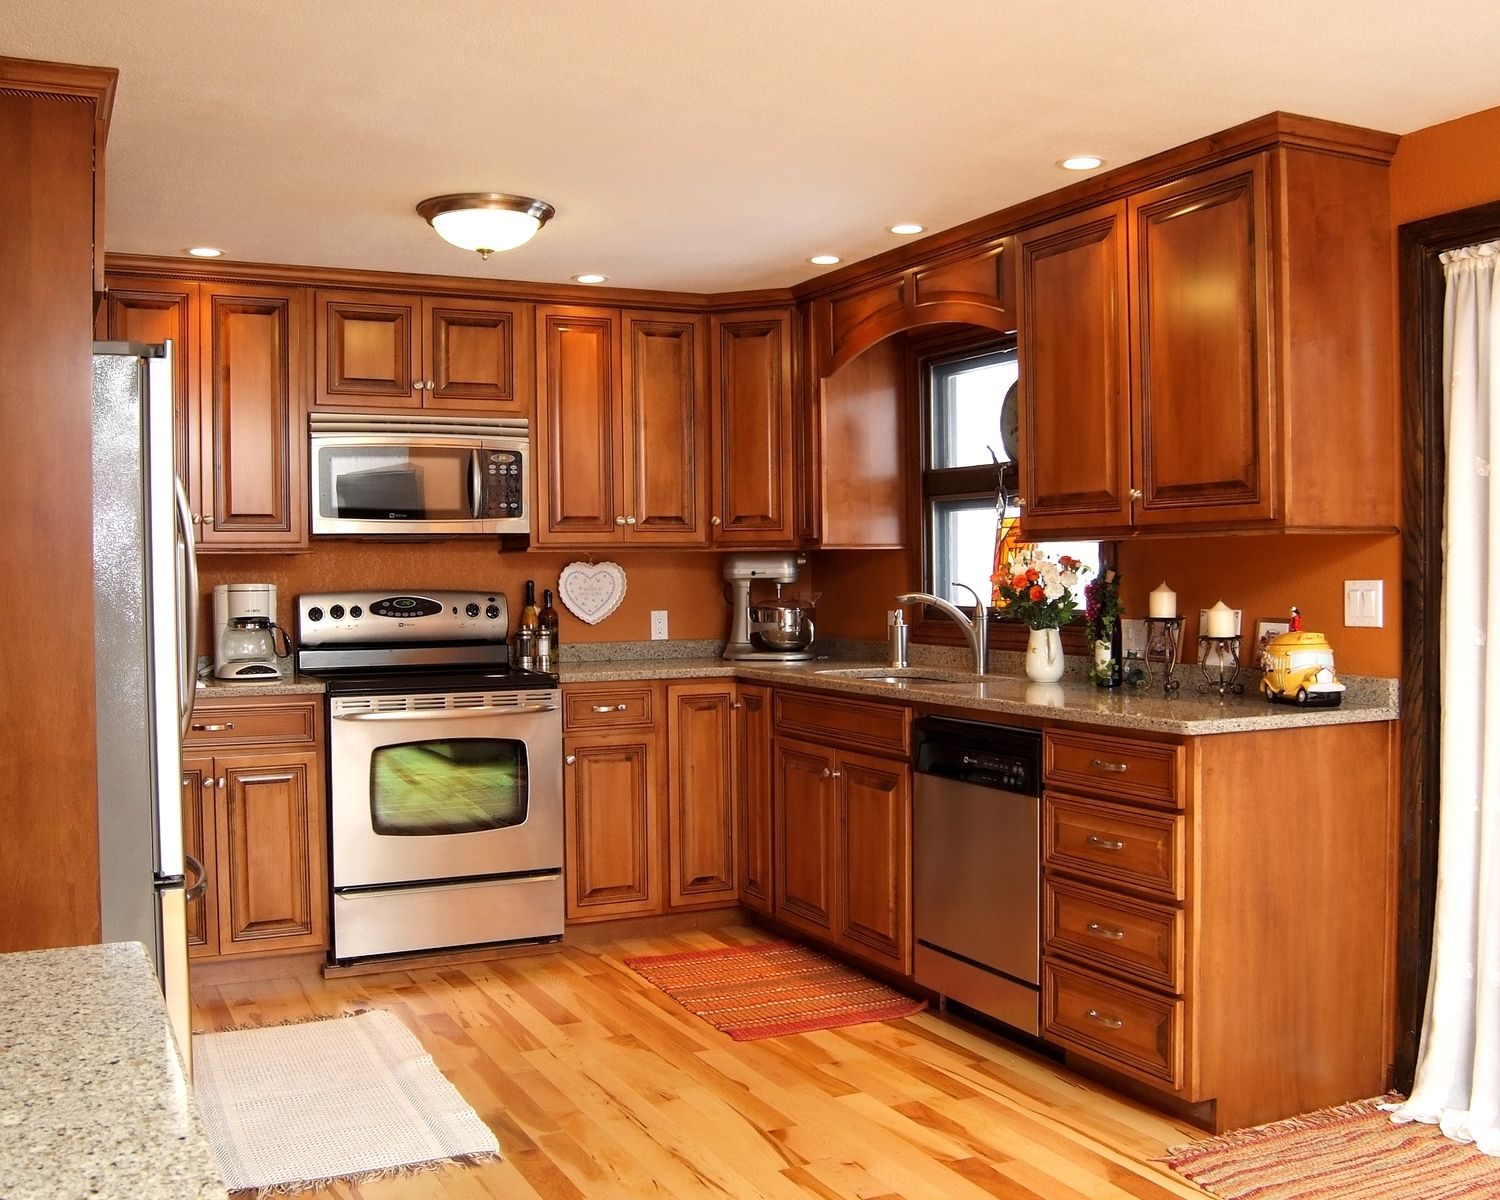 Hand Made Maple Glazed Kitchen With Quartz Countertops by ... on Kitchen Countertops With Maple Cabinets  id=15419